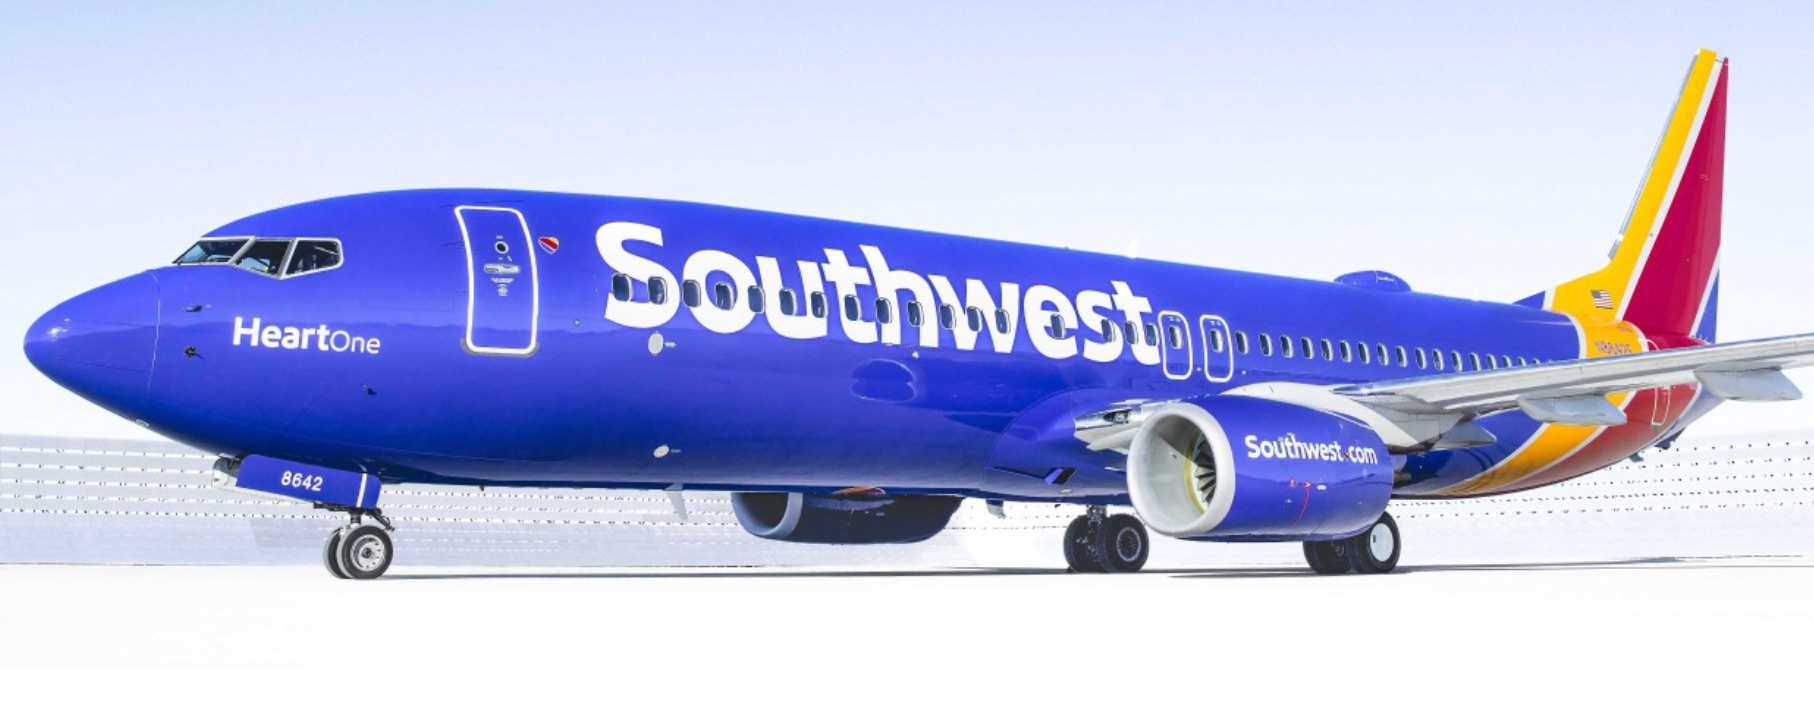 Southwest airlines facing possible lawsuit over denied boarding southwest plane buycottarizona